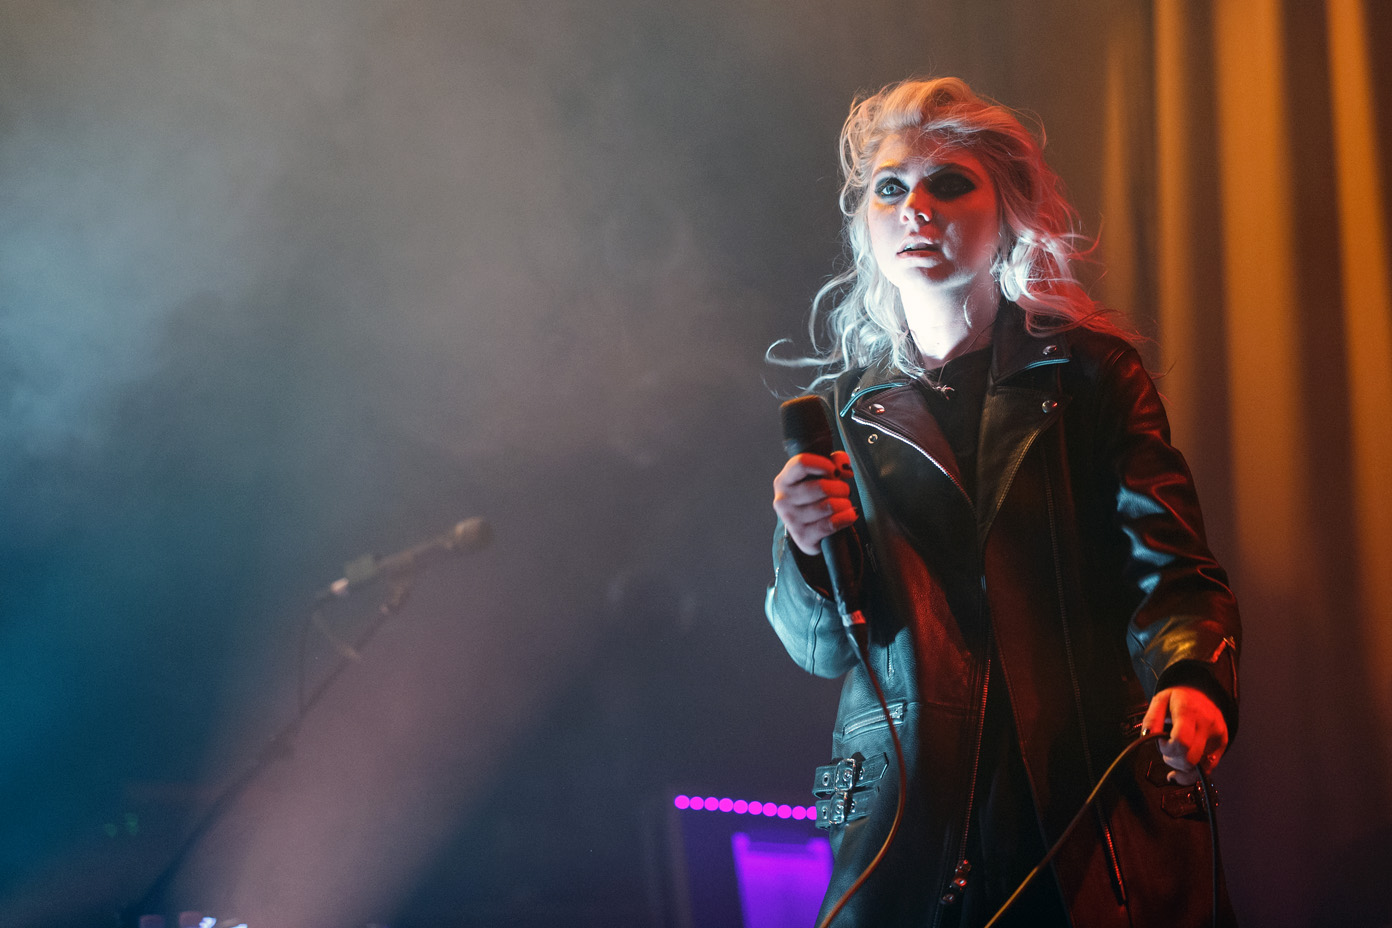 The Pretty Reckless' Taylor Momsen on stage at the O2 Ritz